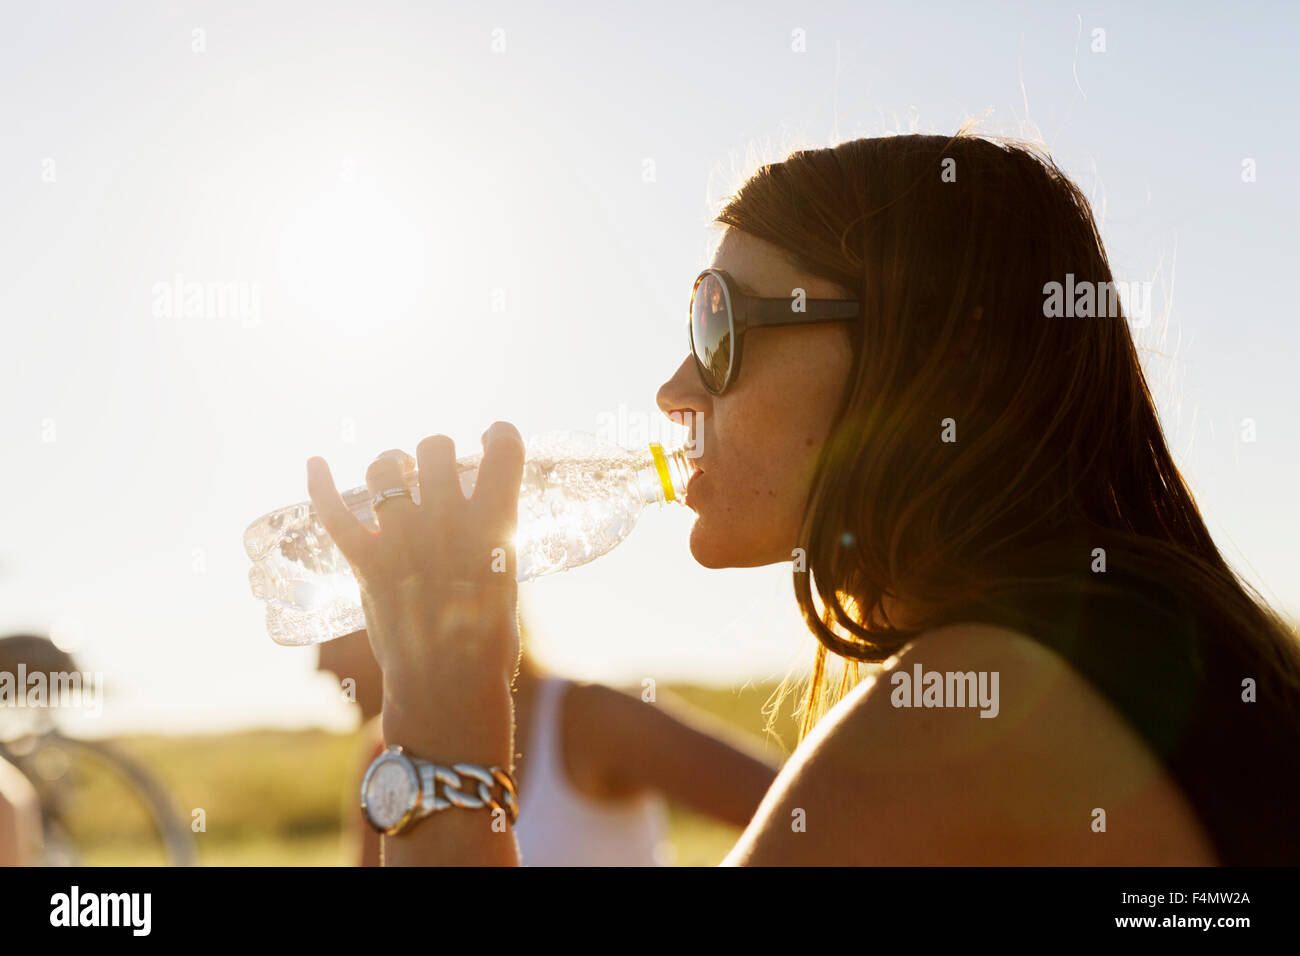 Close-up of woman drinking water from bottle at park - Stock Image